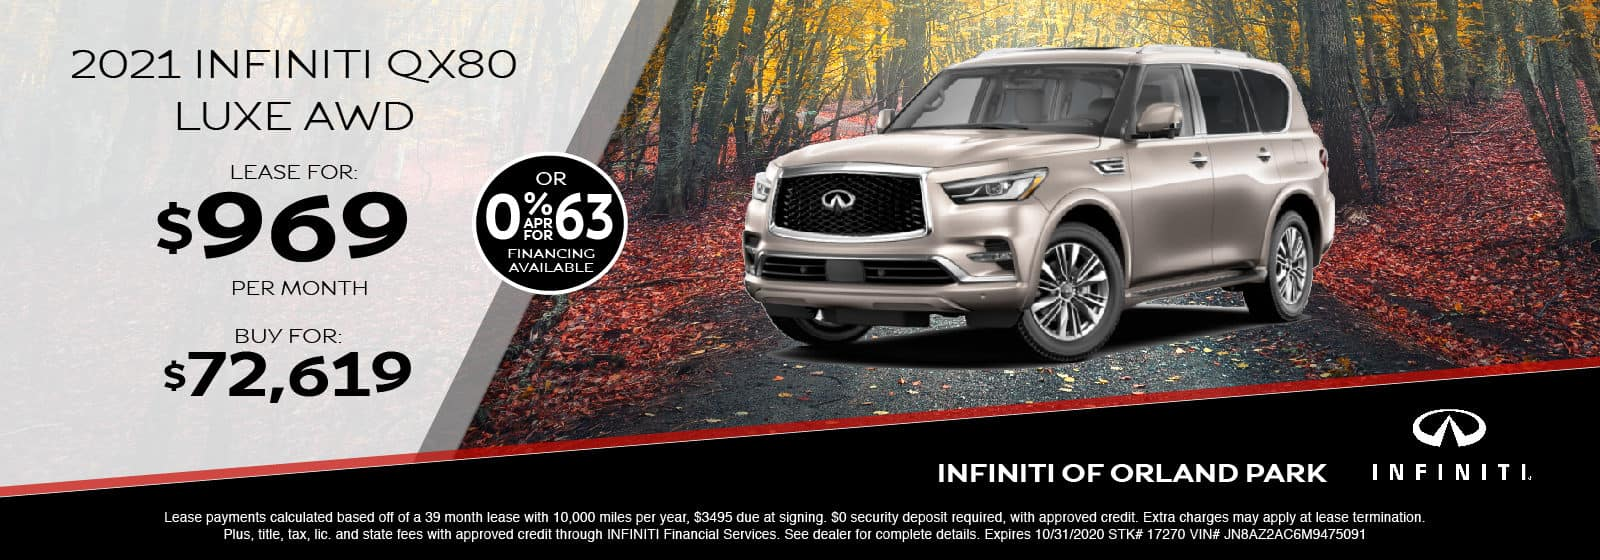 Lease a new 2021 QX80 for $969/month